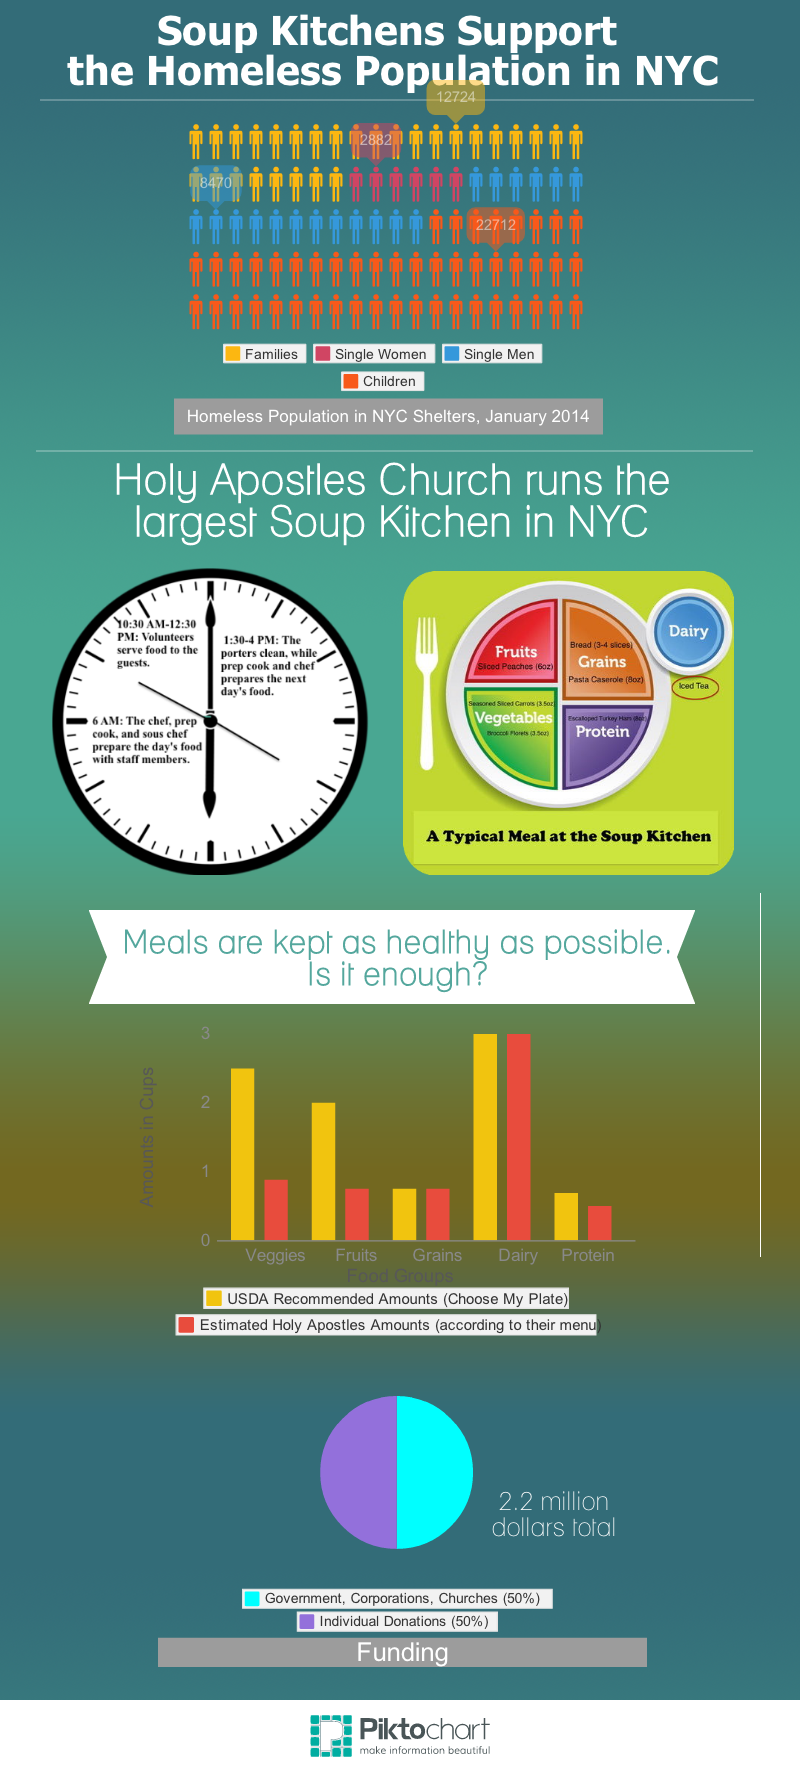 Soup Kitchens Support the Homeless Population in NYC